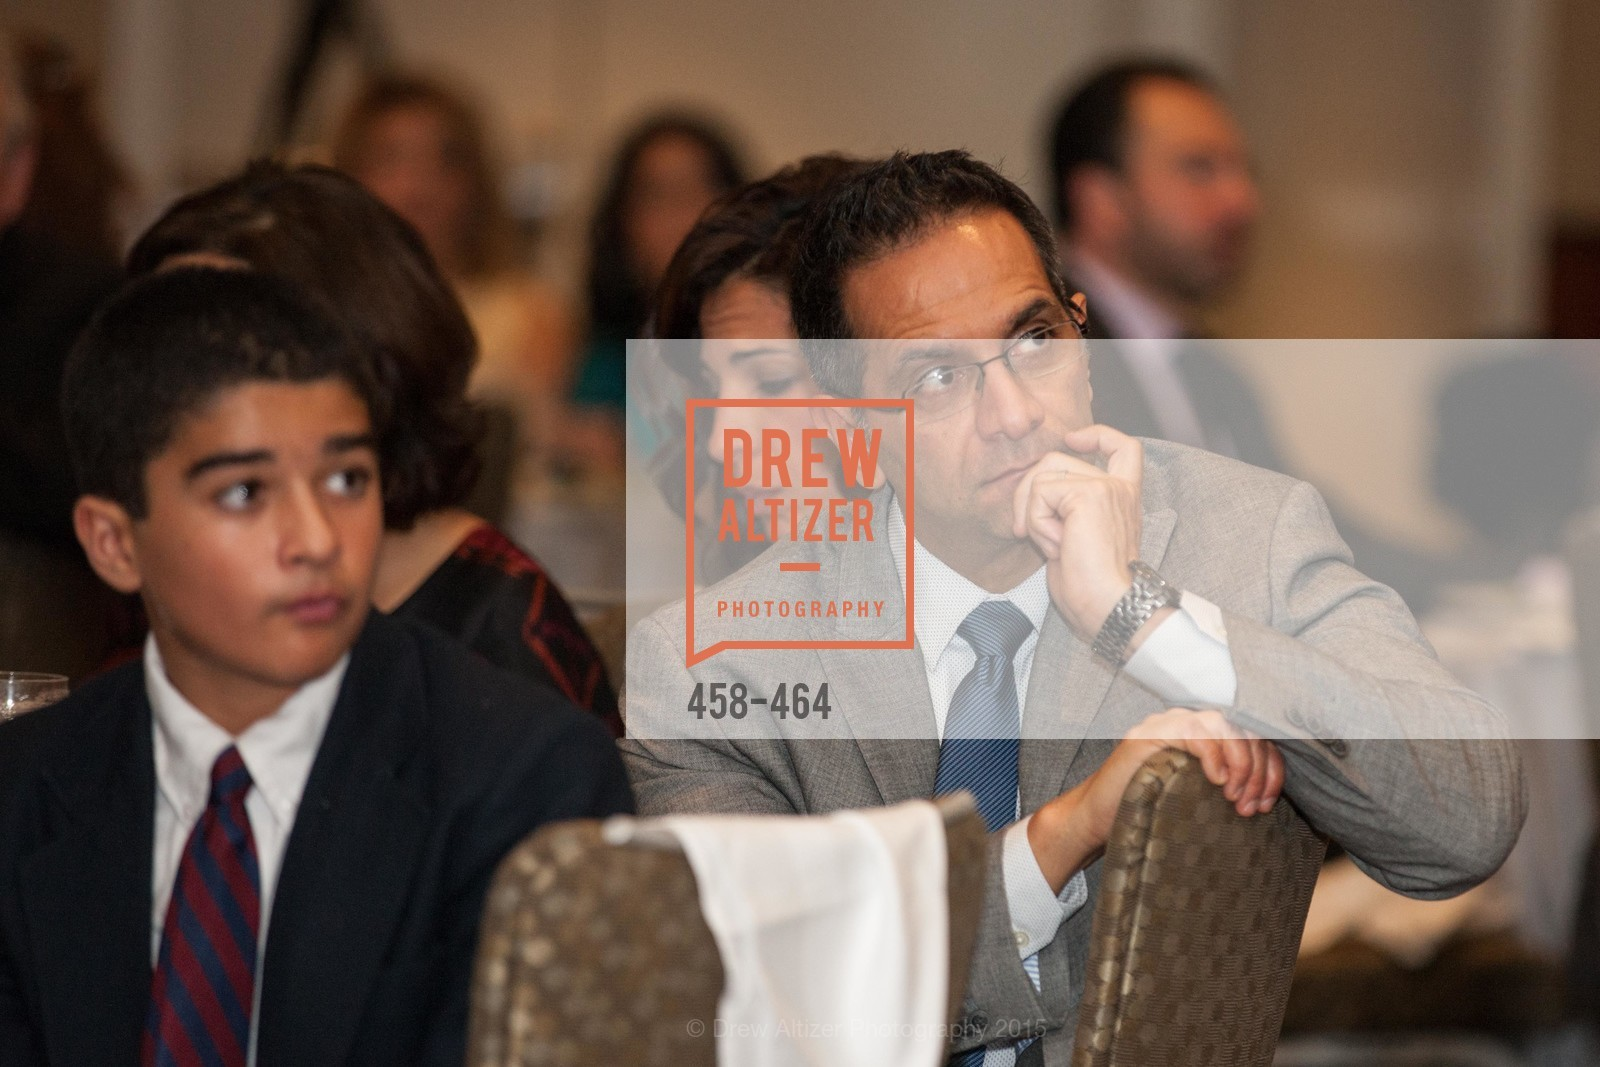 Nicholas Farzaneh, Fahid Feid, Operation Smile Presents THE SAN FRANCISCO 2015 SMILE GALA, InterContinental Hotel, November 7th, 2015,Drew Altizer, Drew Altizer Photography, full-service agency, private events, San Francisco photographer, photographer california